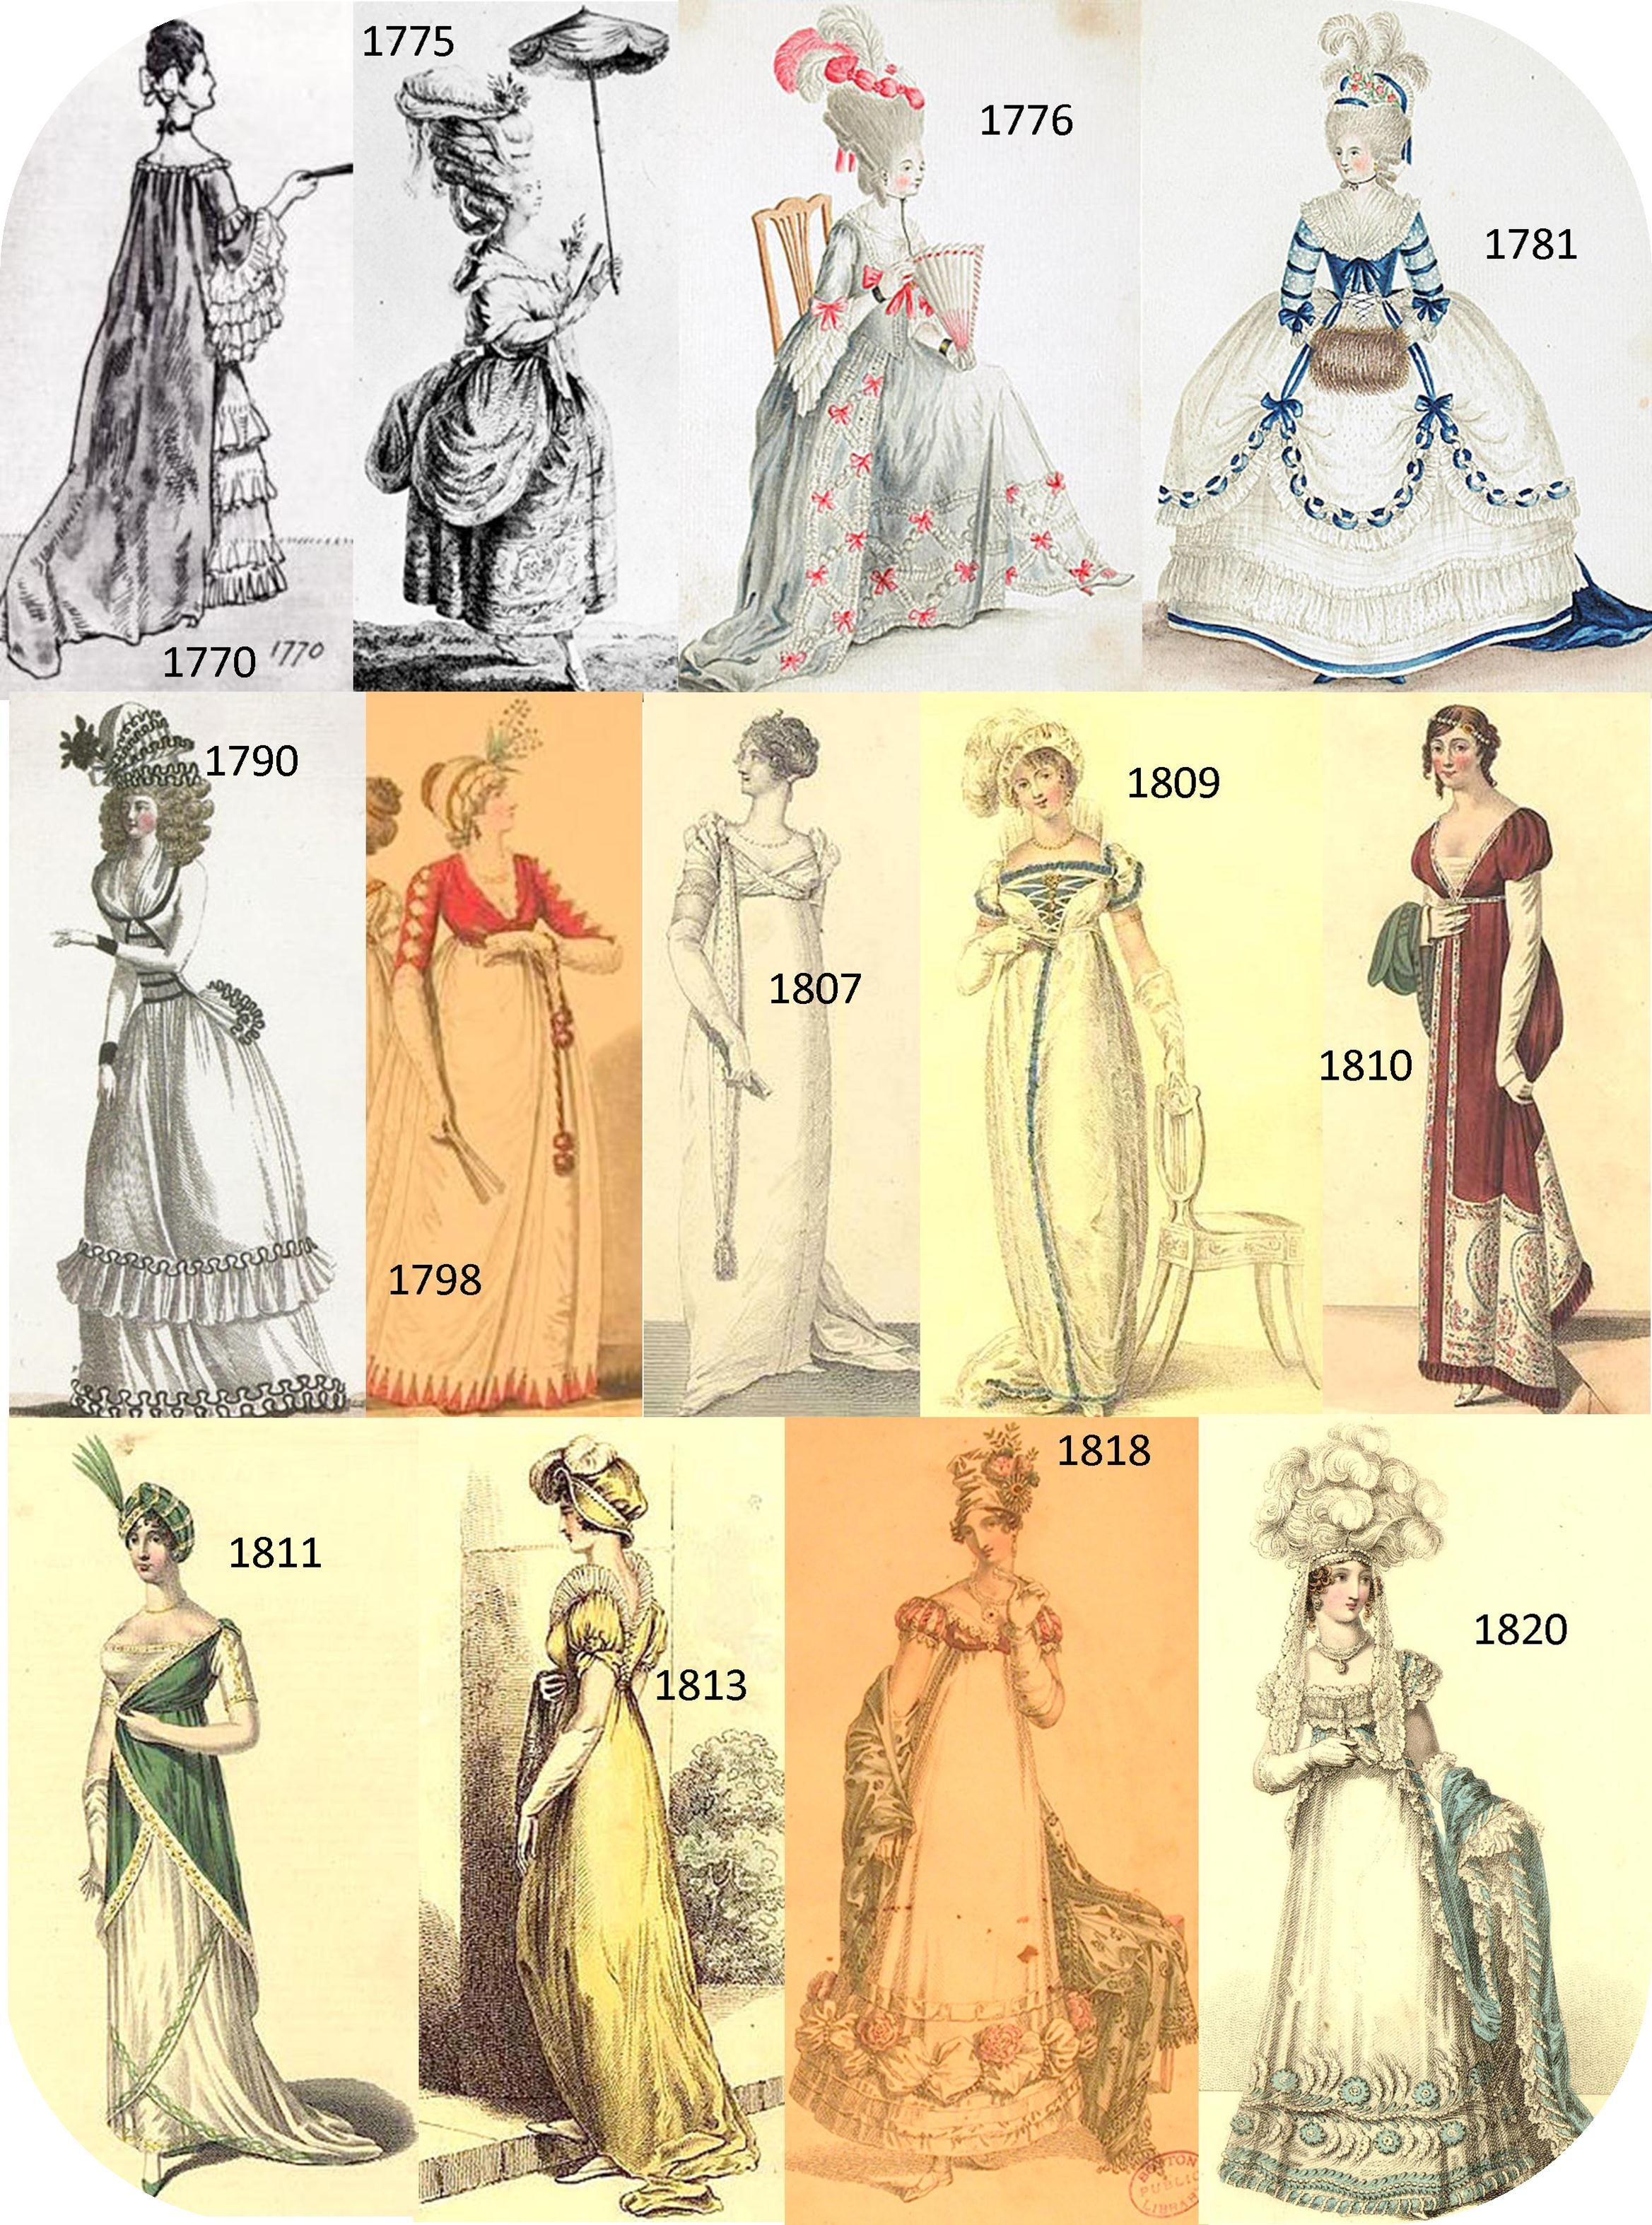 Late 1700s Early 1800s Fashion Plate This Shows The Growth Of Through 1700 And There Is Goth Bustle Etc